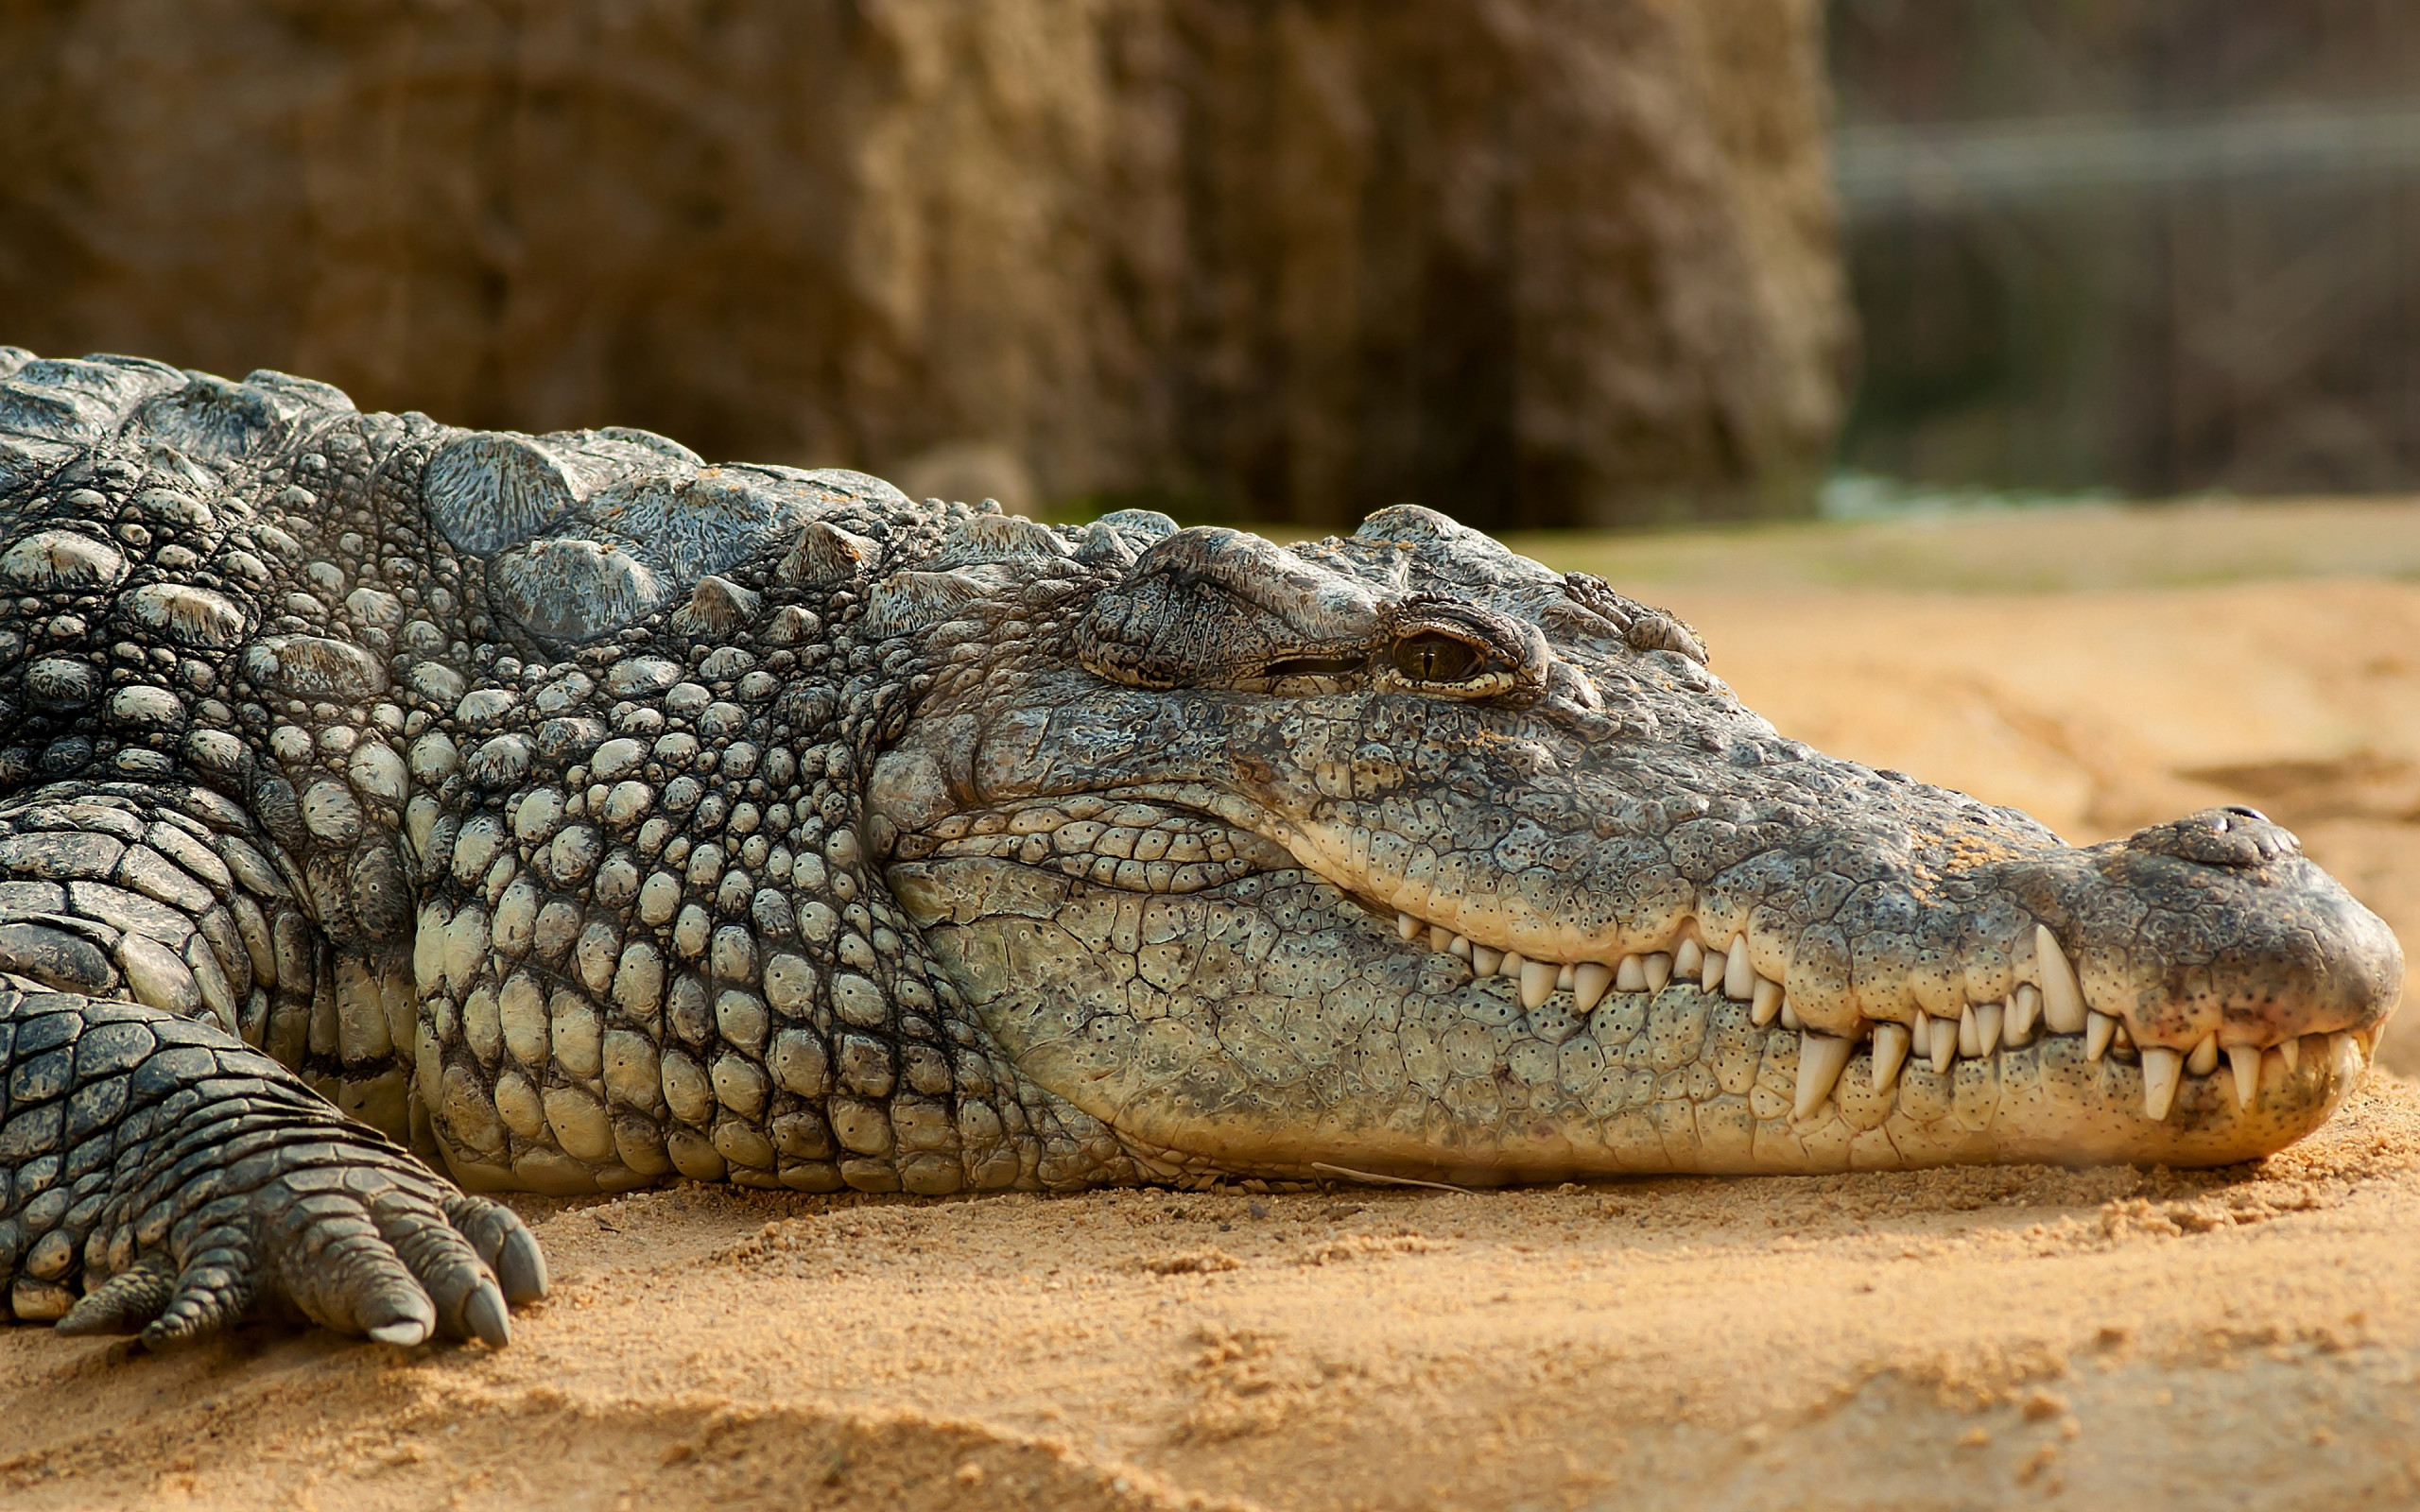 Nile crocodile wallpaper 2560x1600